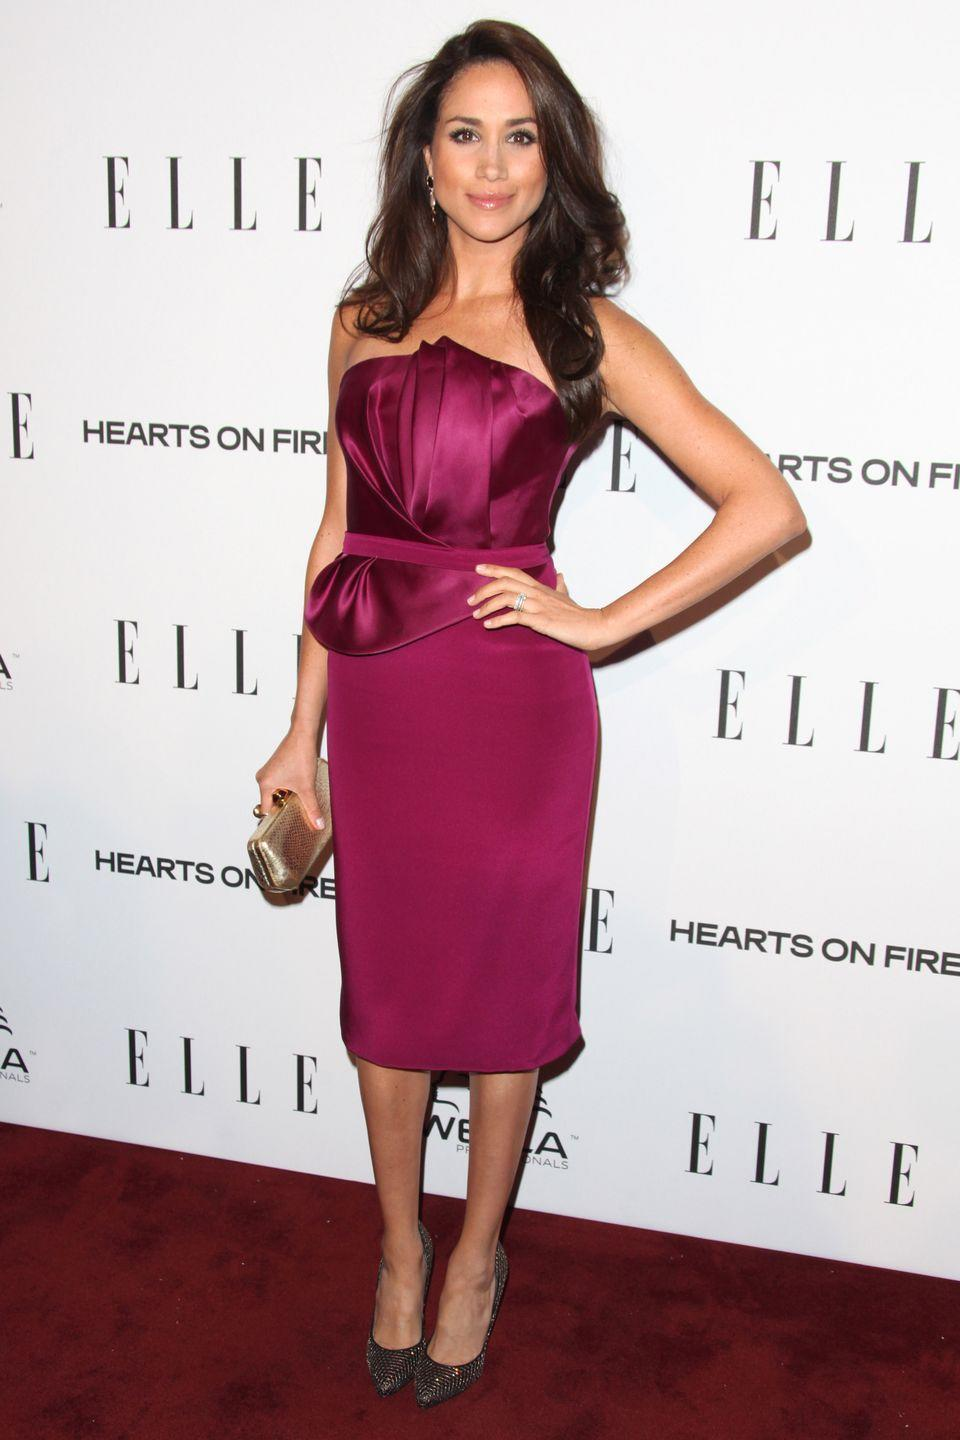 <p>Wearing a raspberry pink Marchesa dress, Meghan Markle attends the ELLE Women in Television Celebration, January 2013</p>